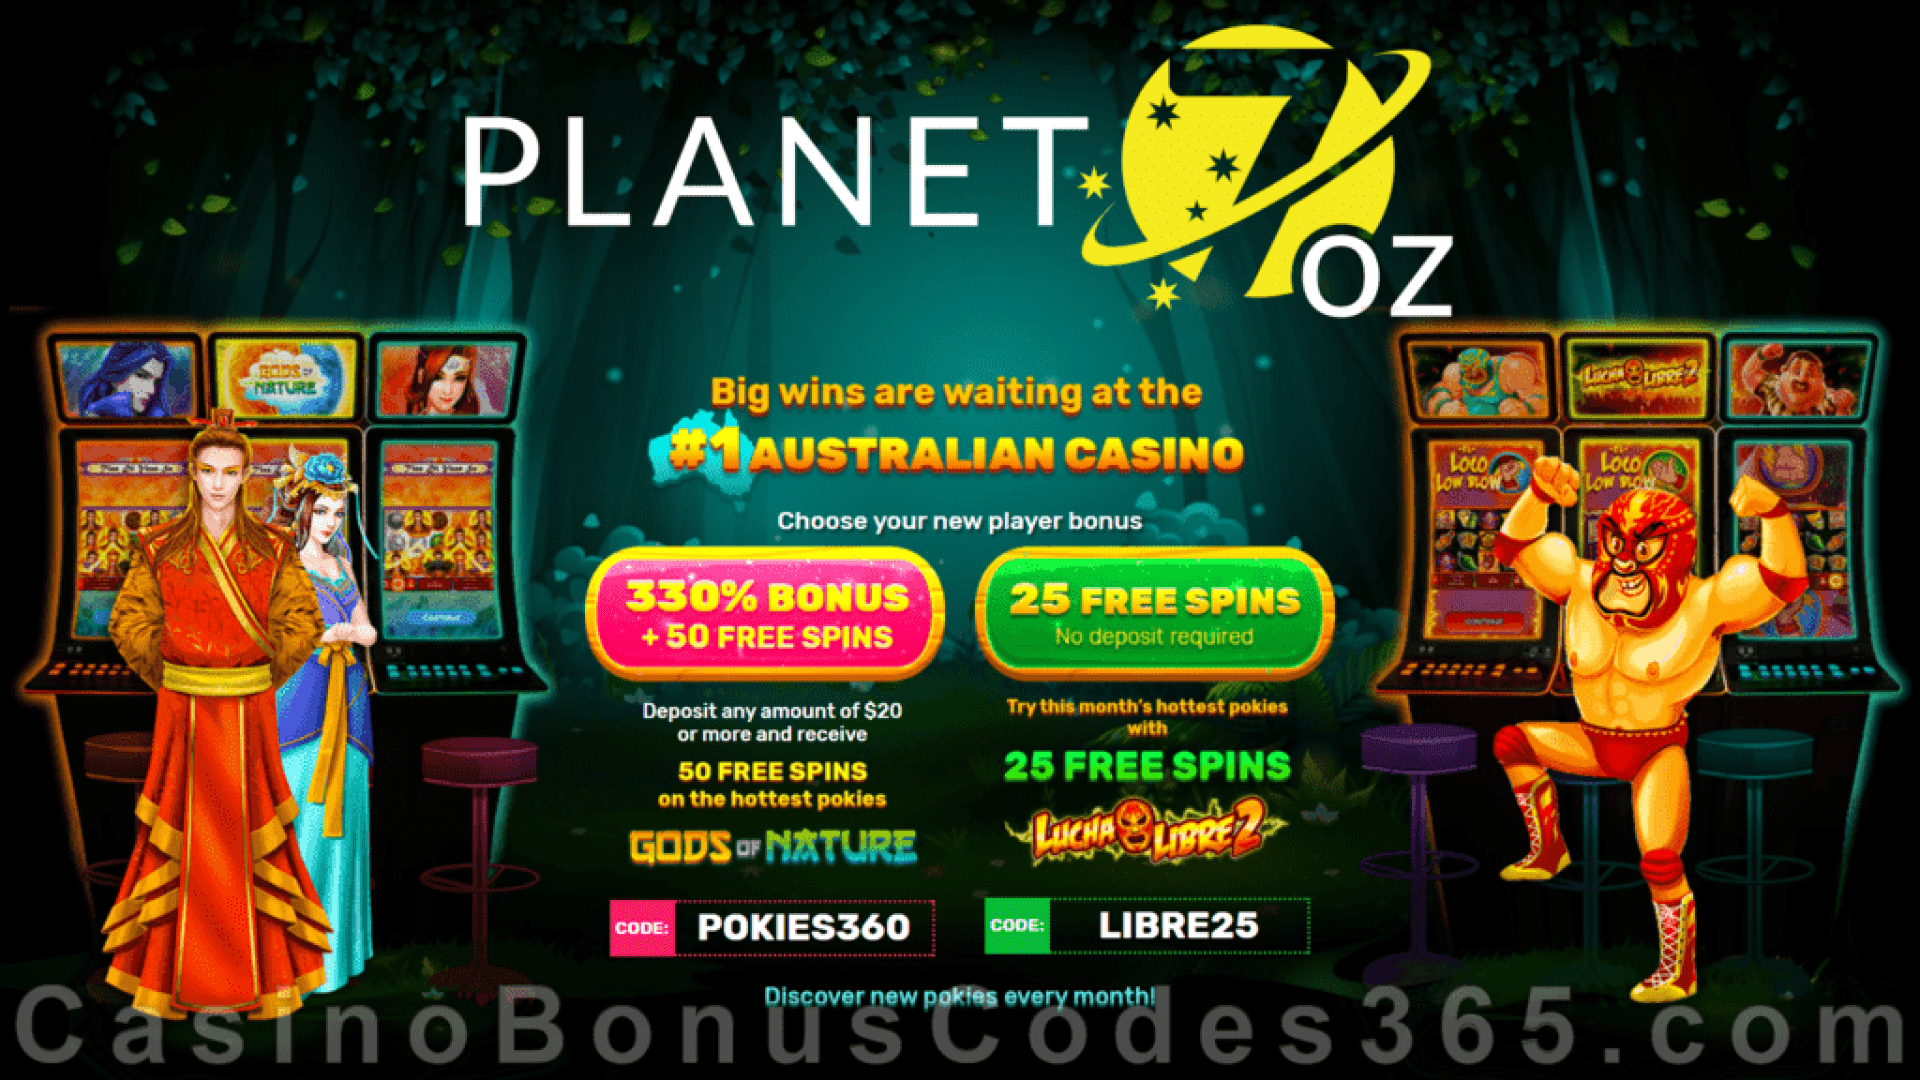 Planet 7 OZ Casino 330% Match Bonus plus 75 FREE Spins Special Deal RTG Gods of Nature Lucha Libre 2